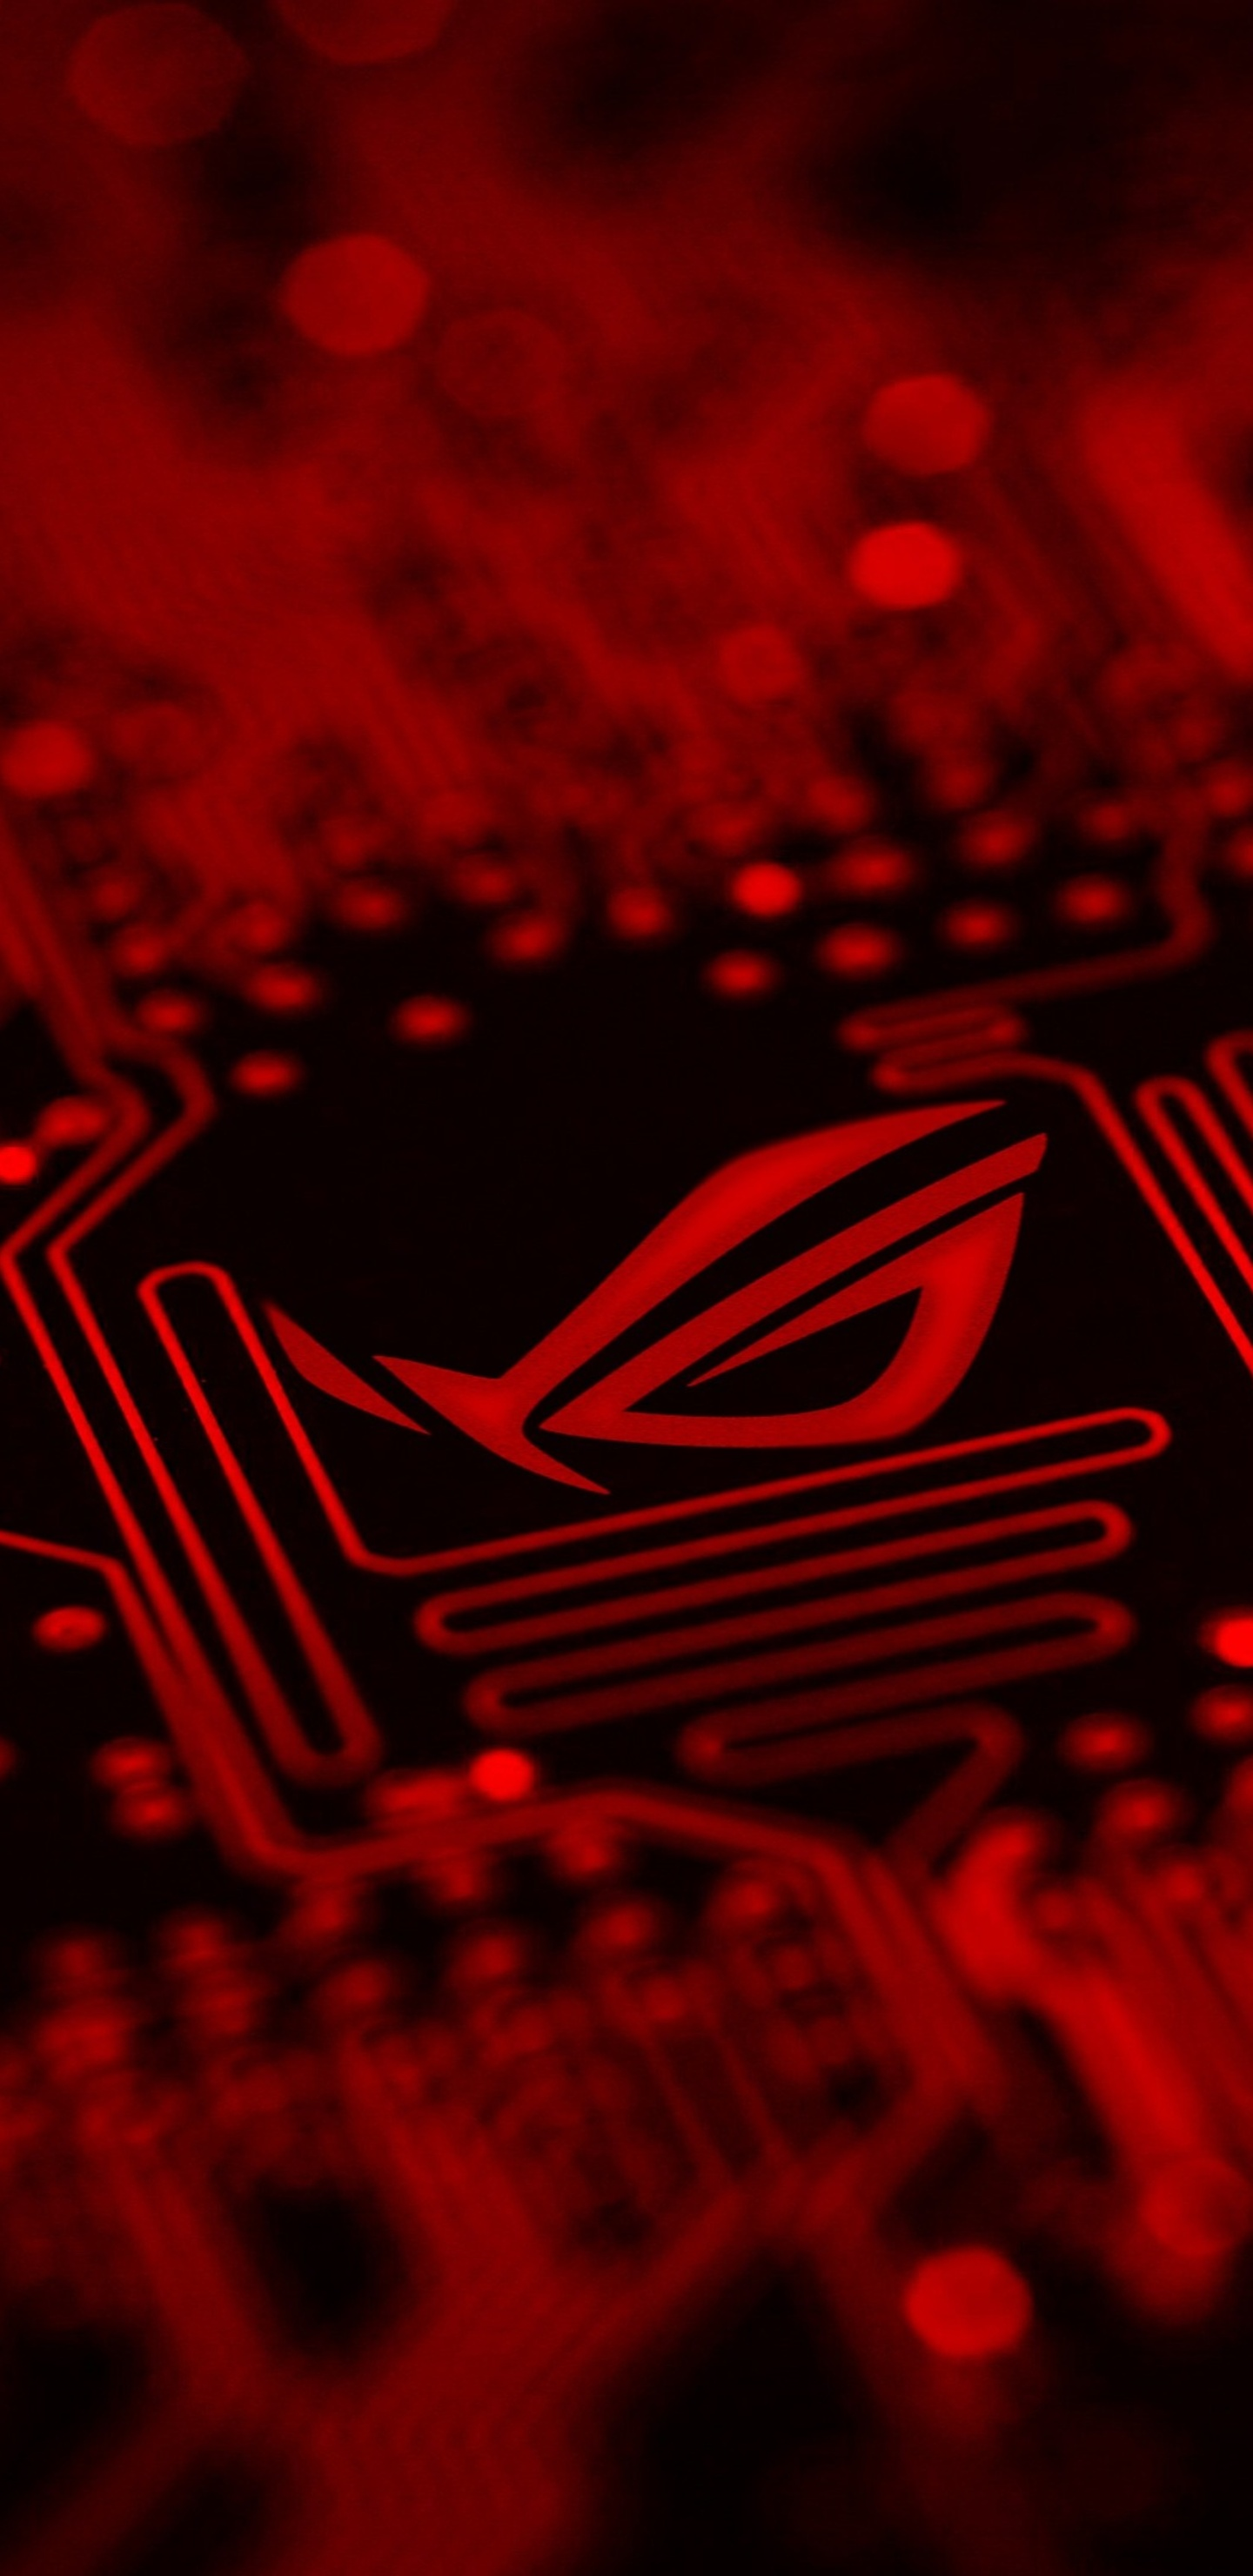 1440x2960 Republic Of Gamers Motherboard Red Background Logo 4k